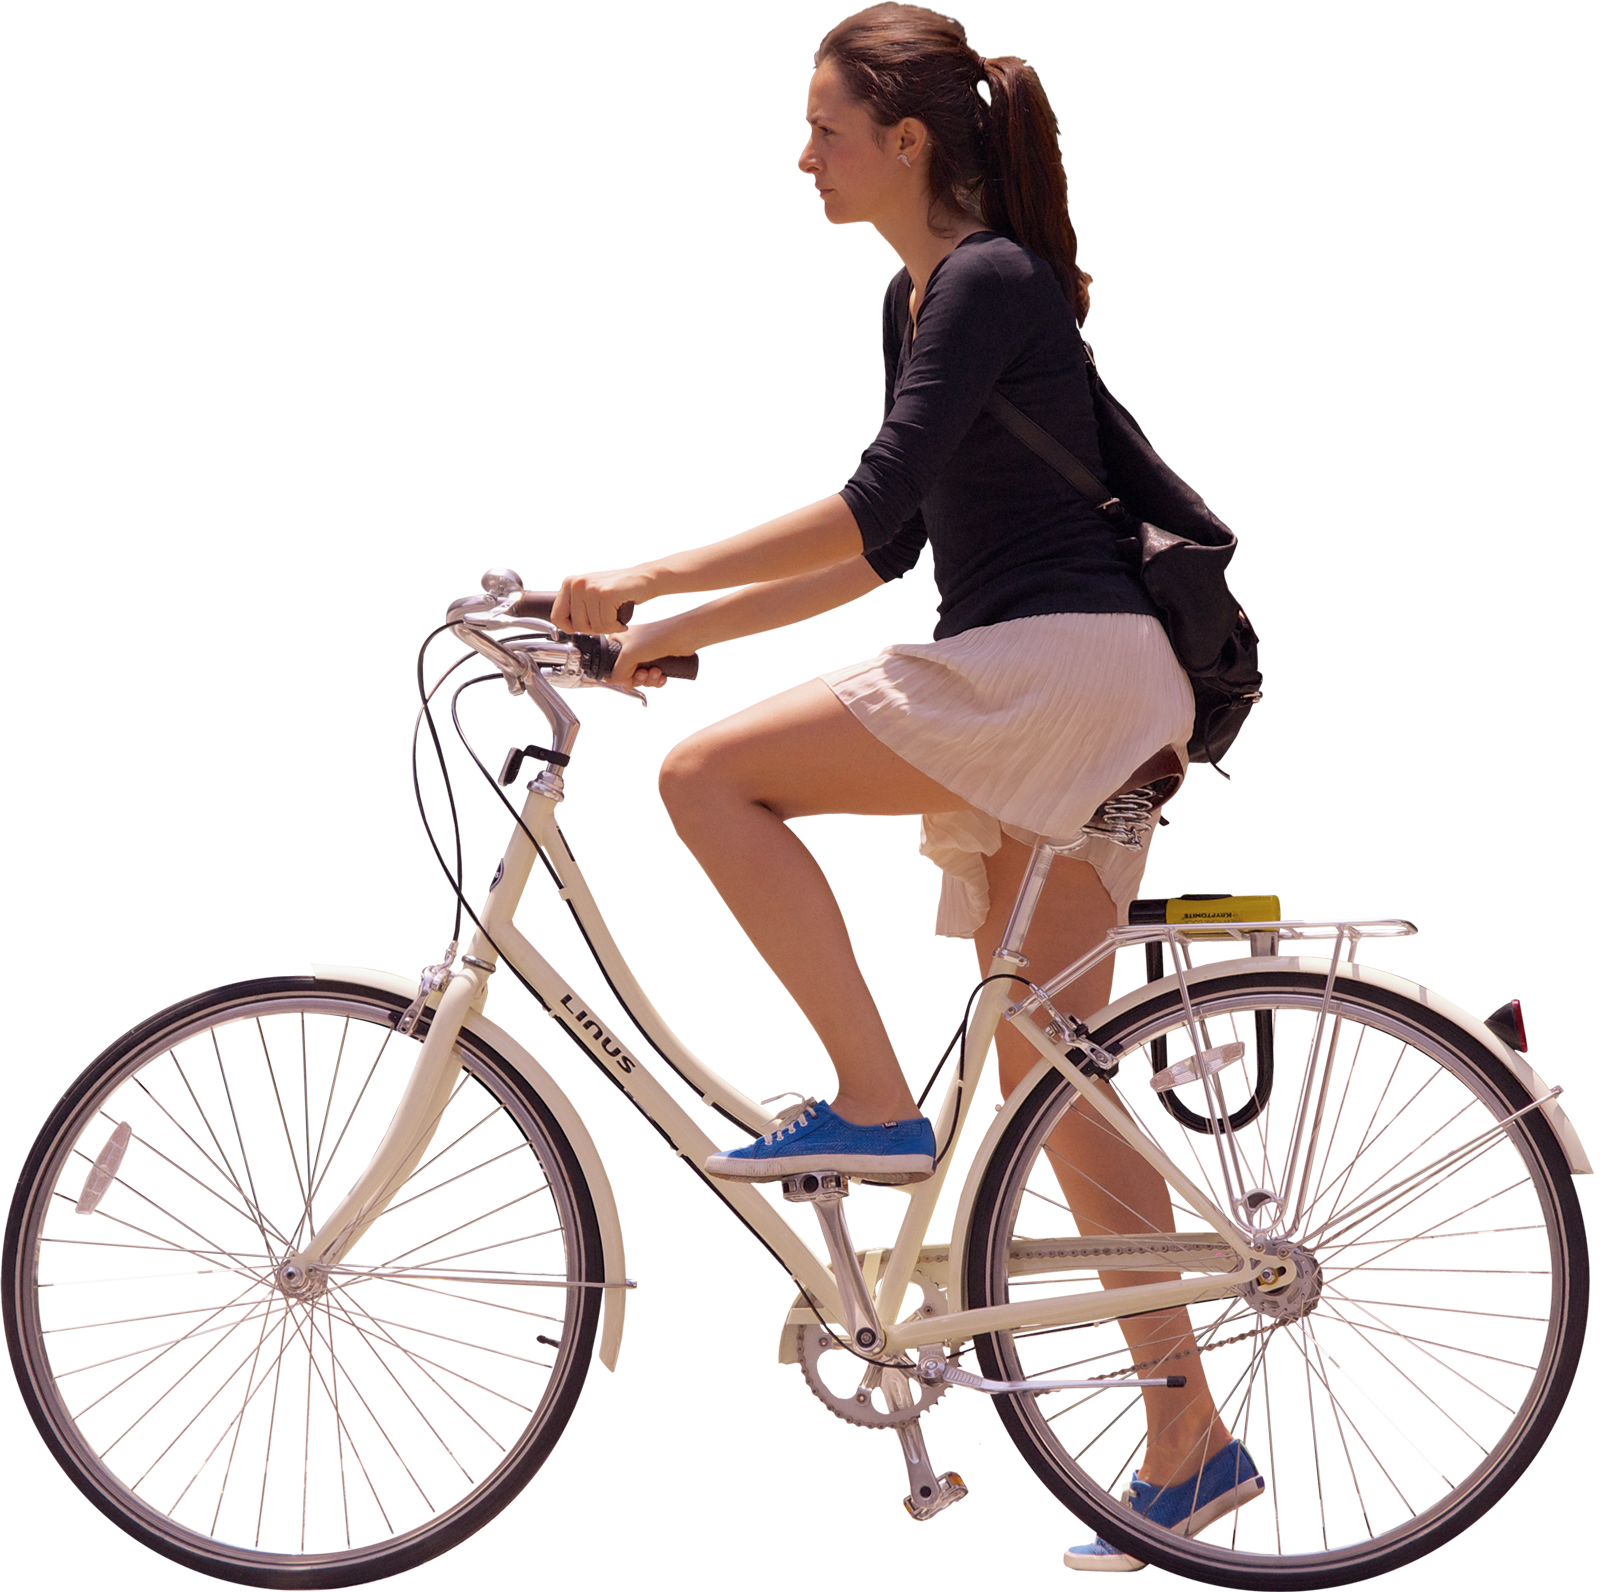 Girl Ride Bicycle PNG Image